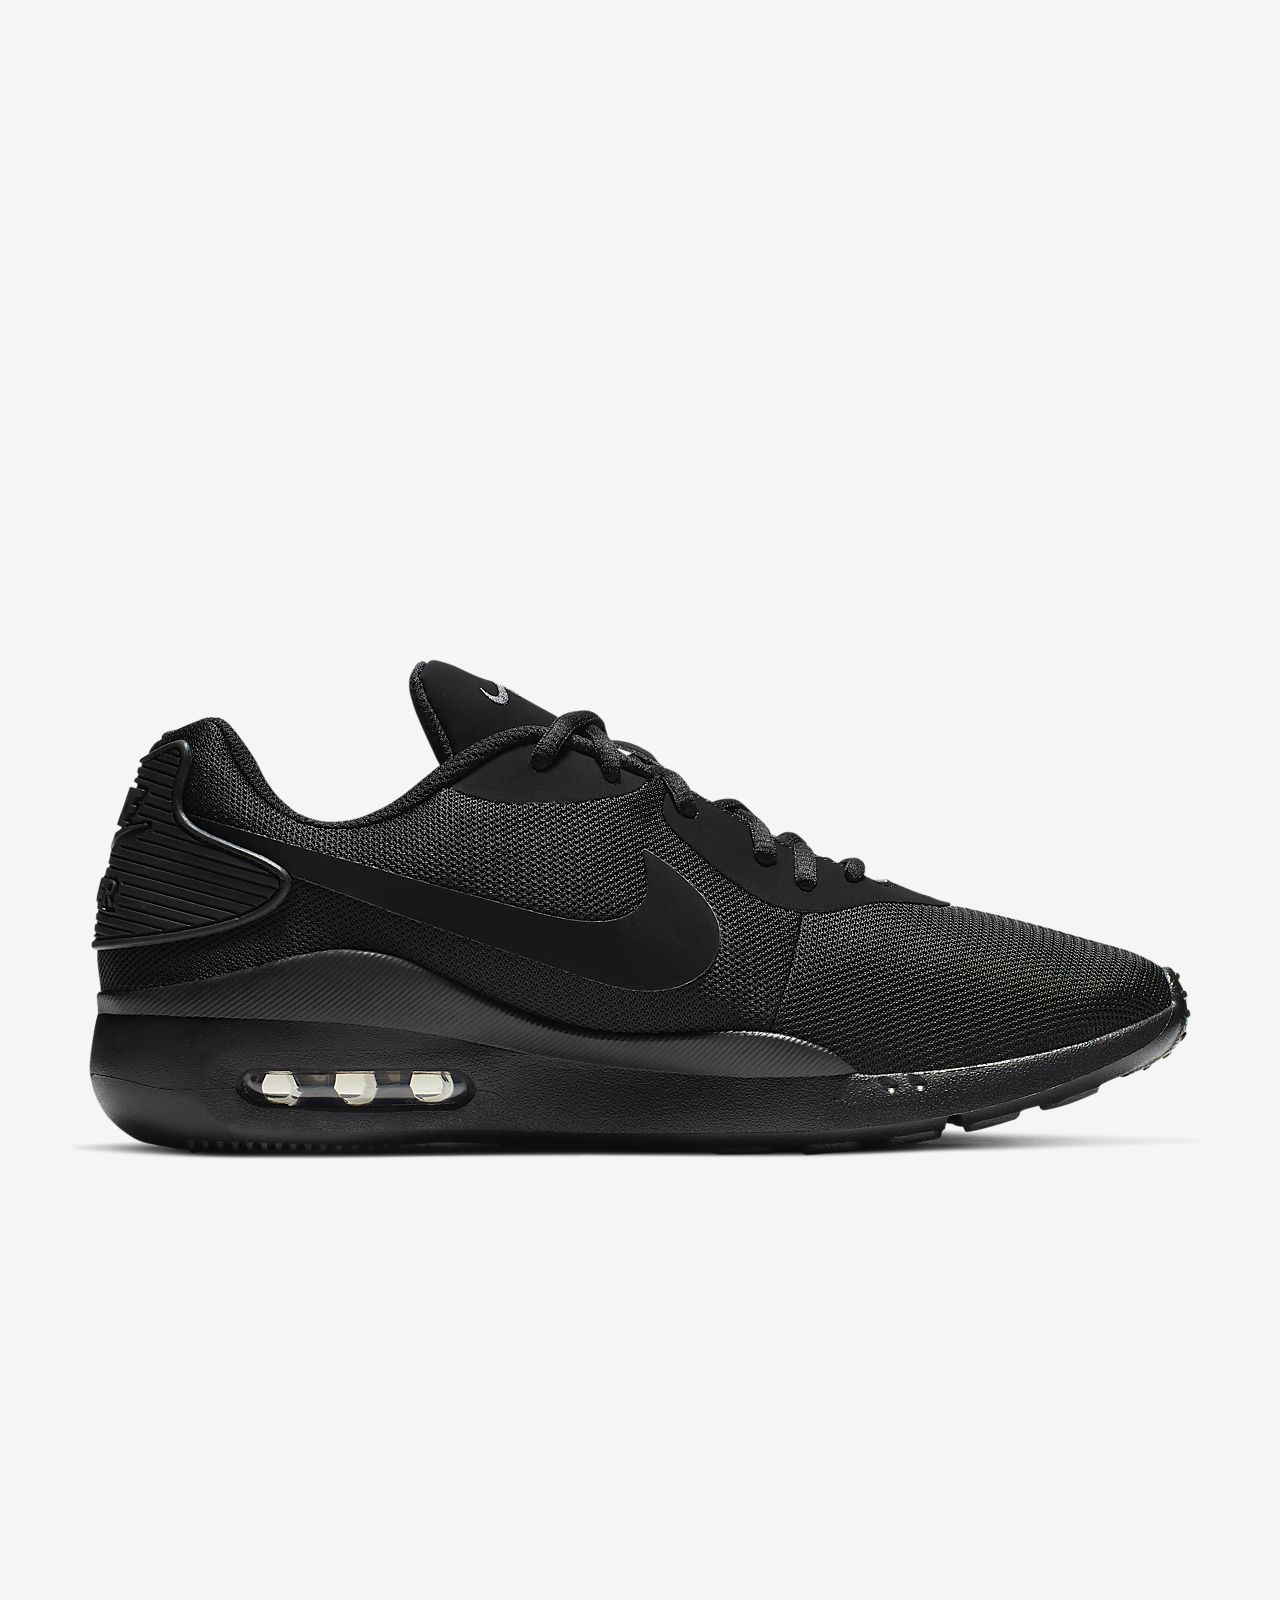 timeless design 0b0ee cd0b3 ... Nike Air Max Oketo Men s Shoe